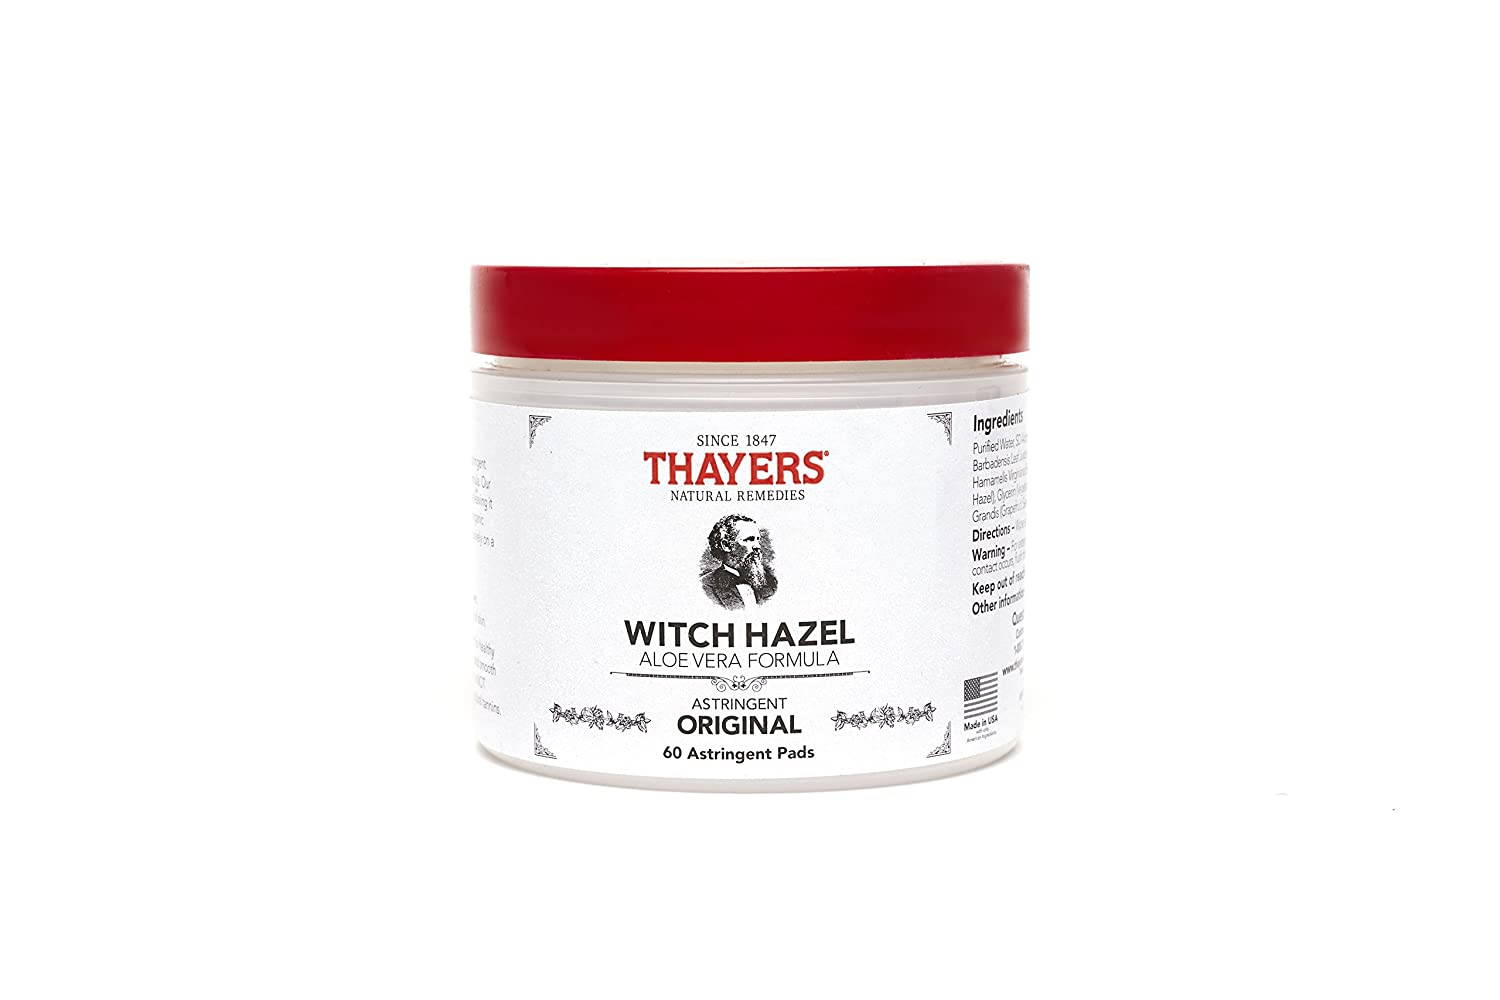 Thayers Original Witch Hazel Astringent Pads with Aloe Vera Formula, 60 Count 6577